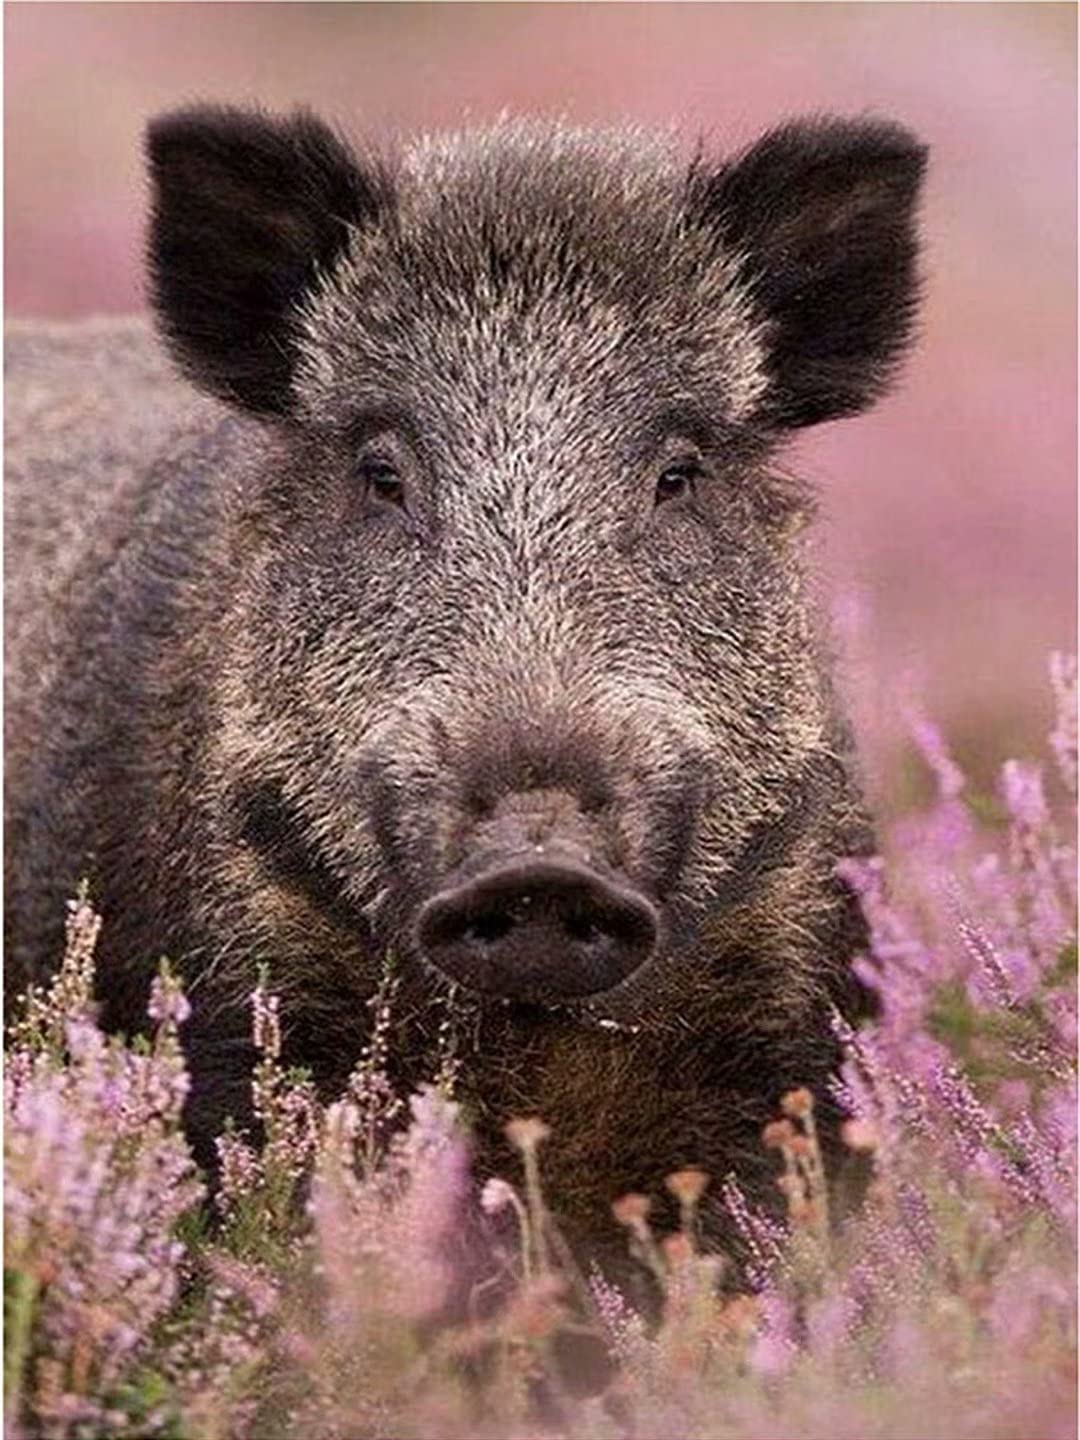 Mstoio Manufacturer regenerated product 3000 Piece Max 67% OFF Adult Puzzle Grass Pig Puzzles Layer Jigsaw fo